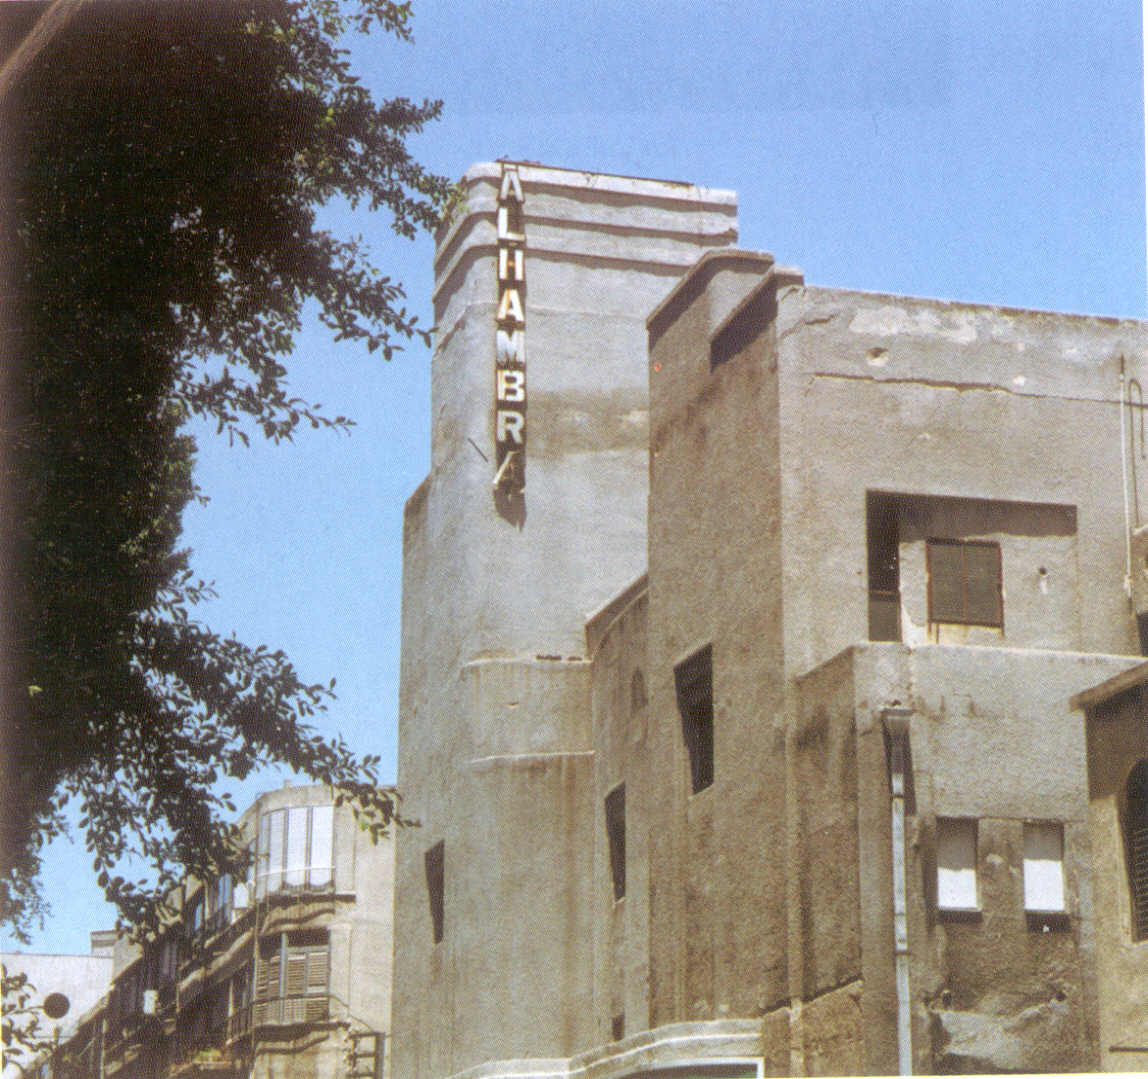 Jaffa - يافا : The famous al-Hamra Cinema in Jamal Basha street 1990 #2